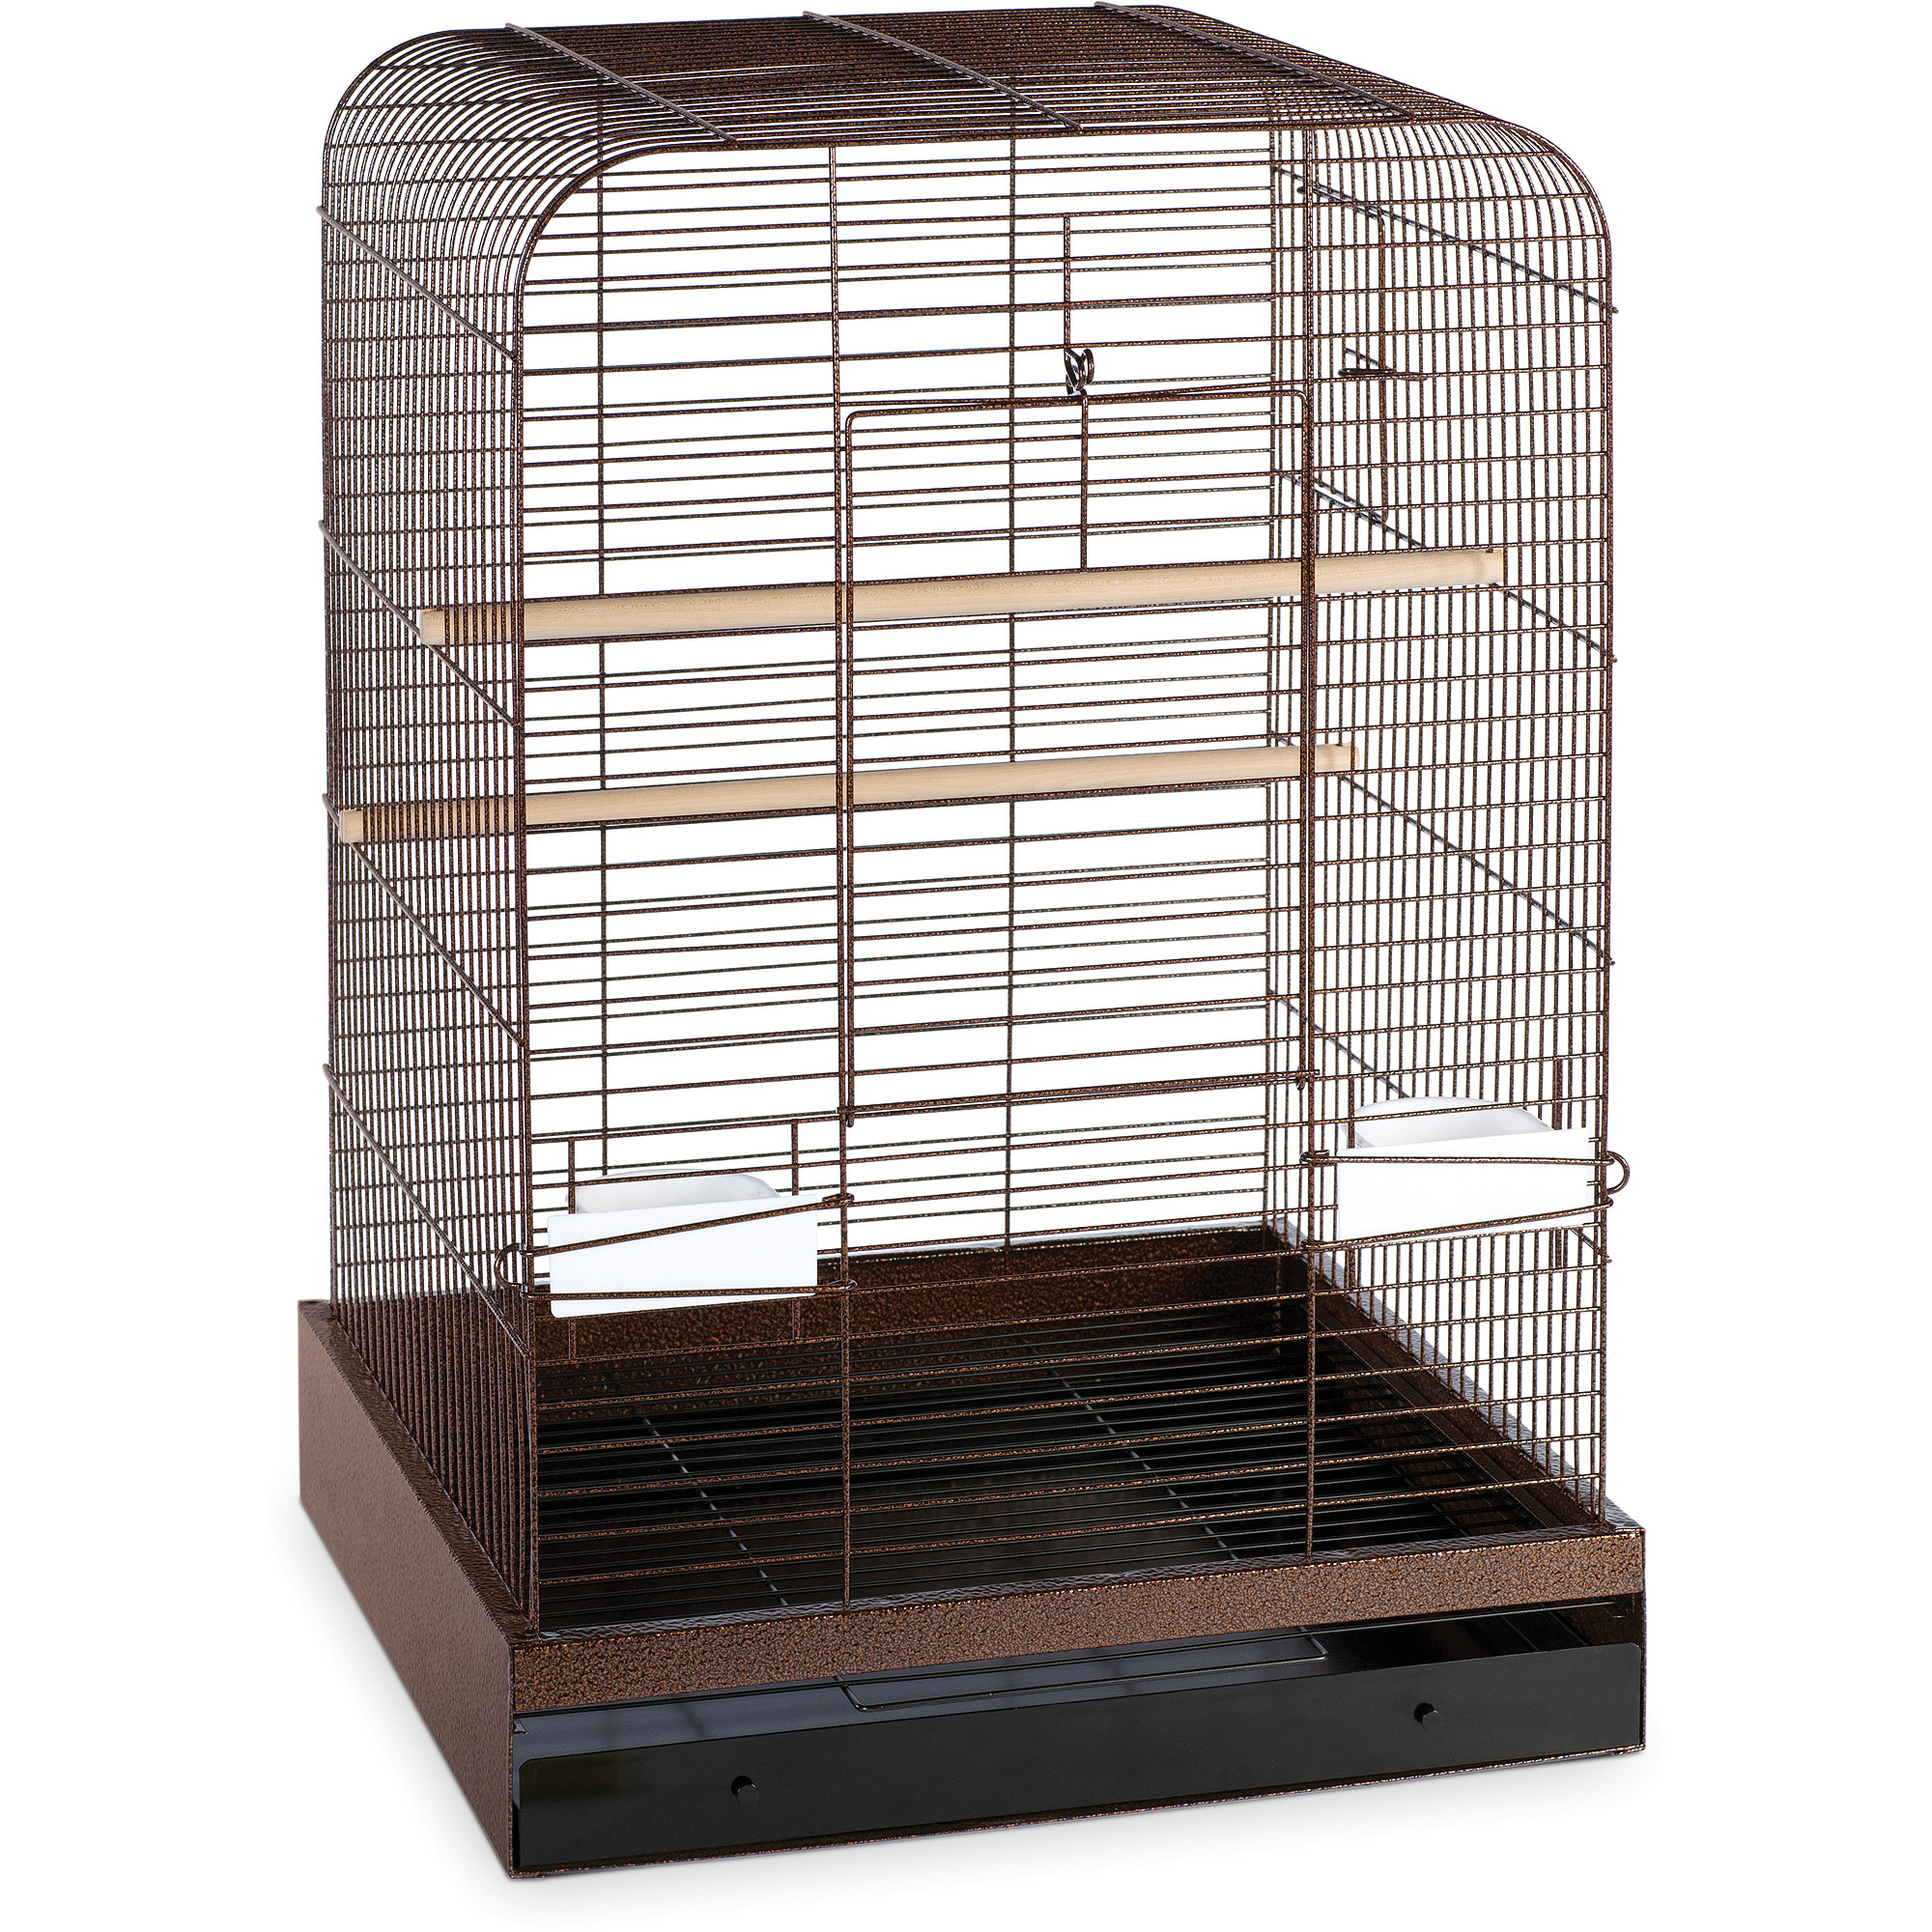 Prevue Pet Products Madison Birdcage